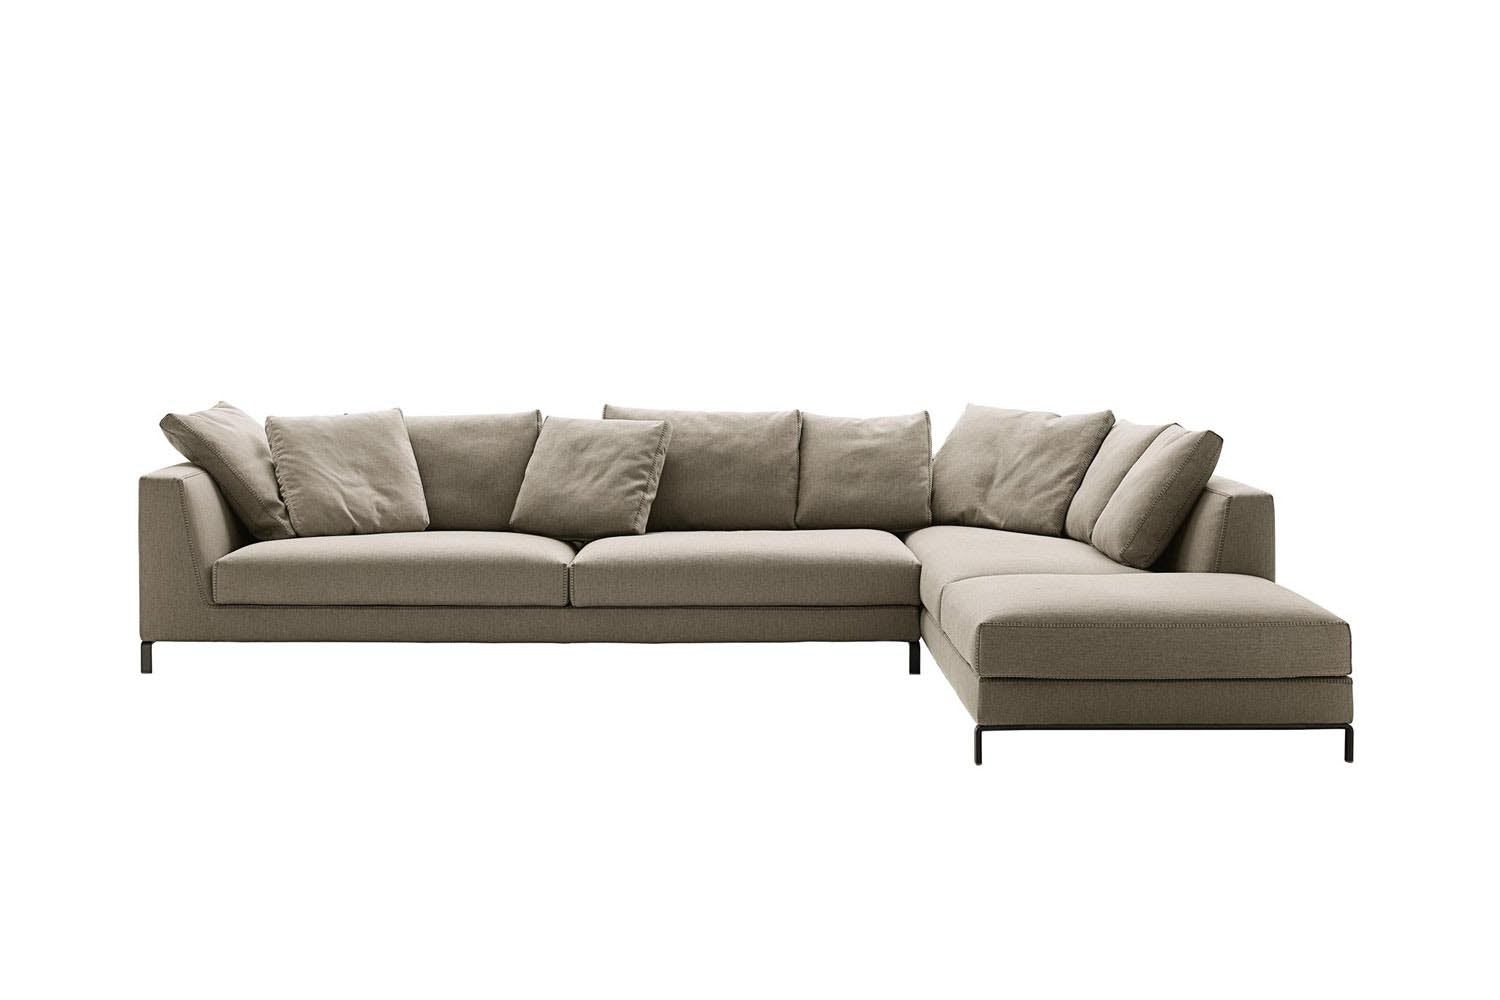 Ray Sofa by Antonio Citterio for B&B Italia